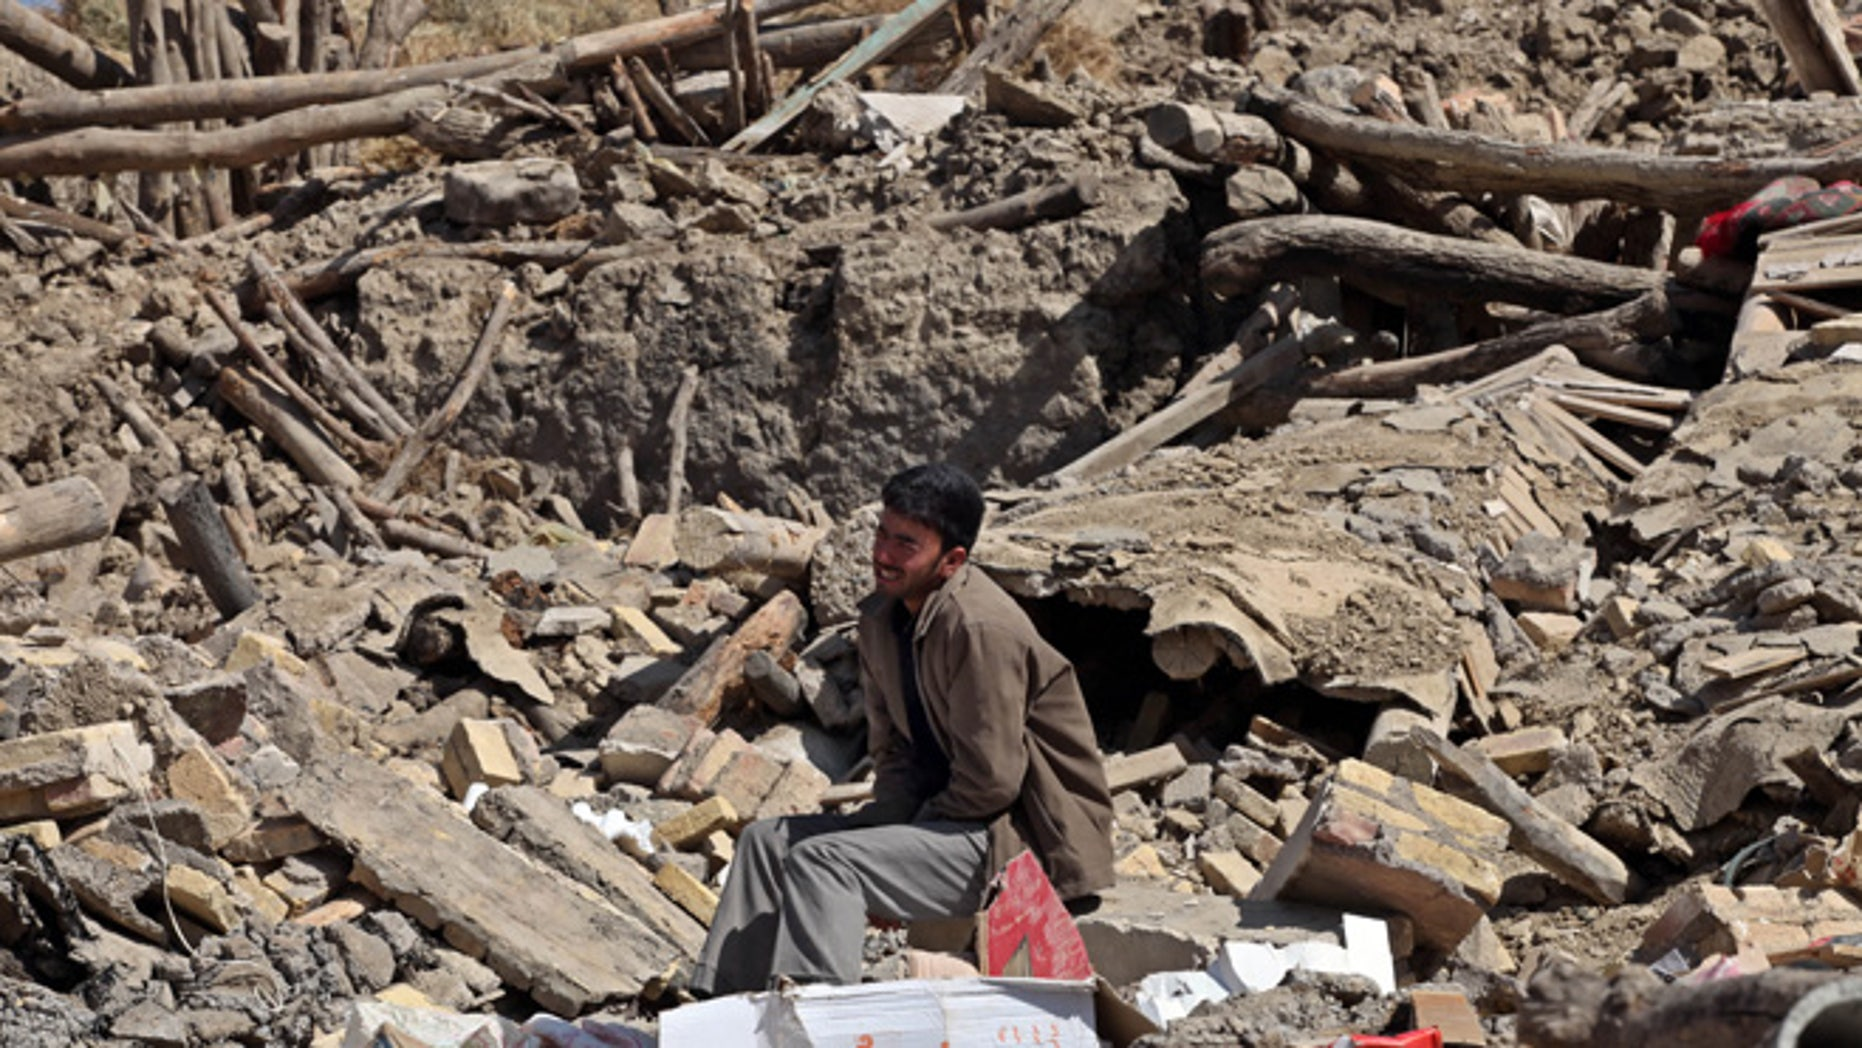 Aug. 13, 2012: A victim of Saturday's earthquake grieves as he sits on ruins of buildings in a village near the Iranian city of Varzaqan.